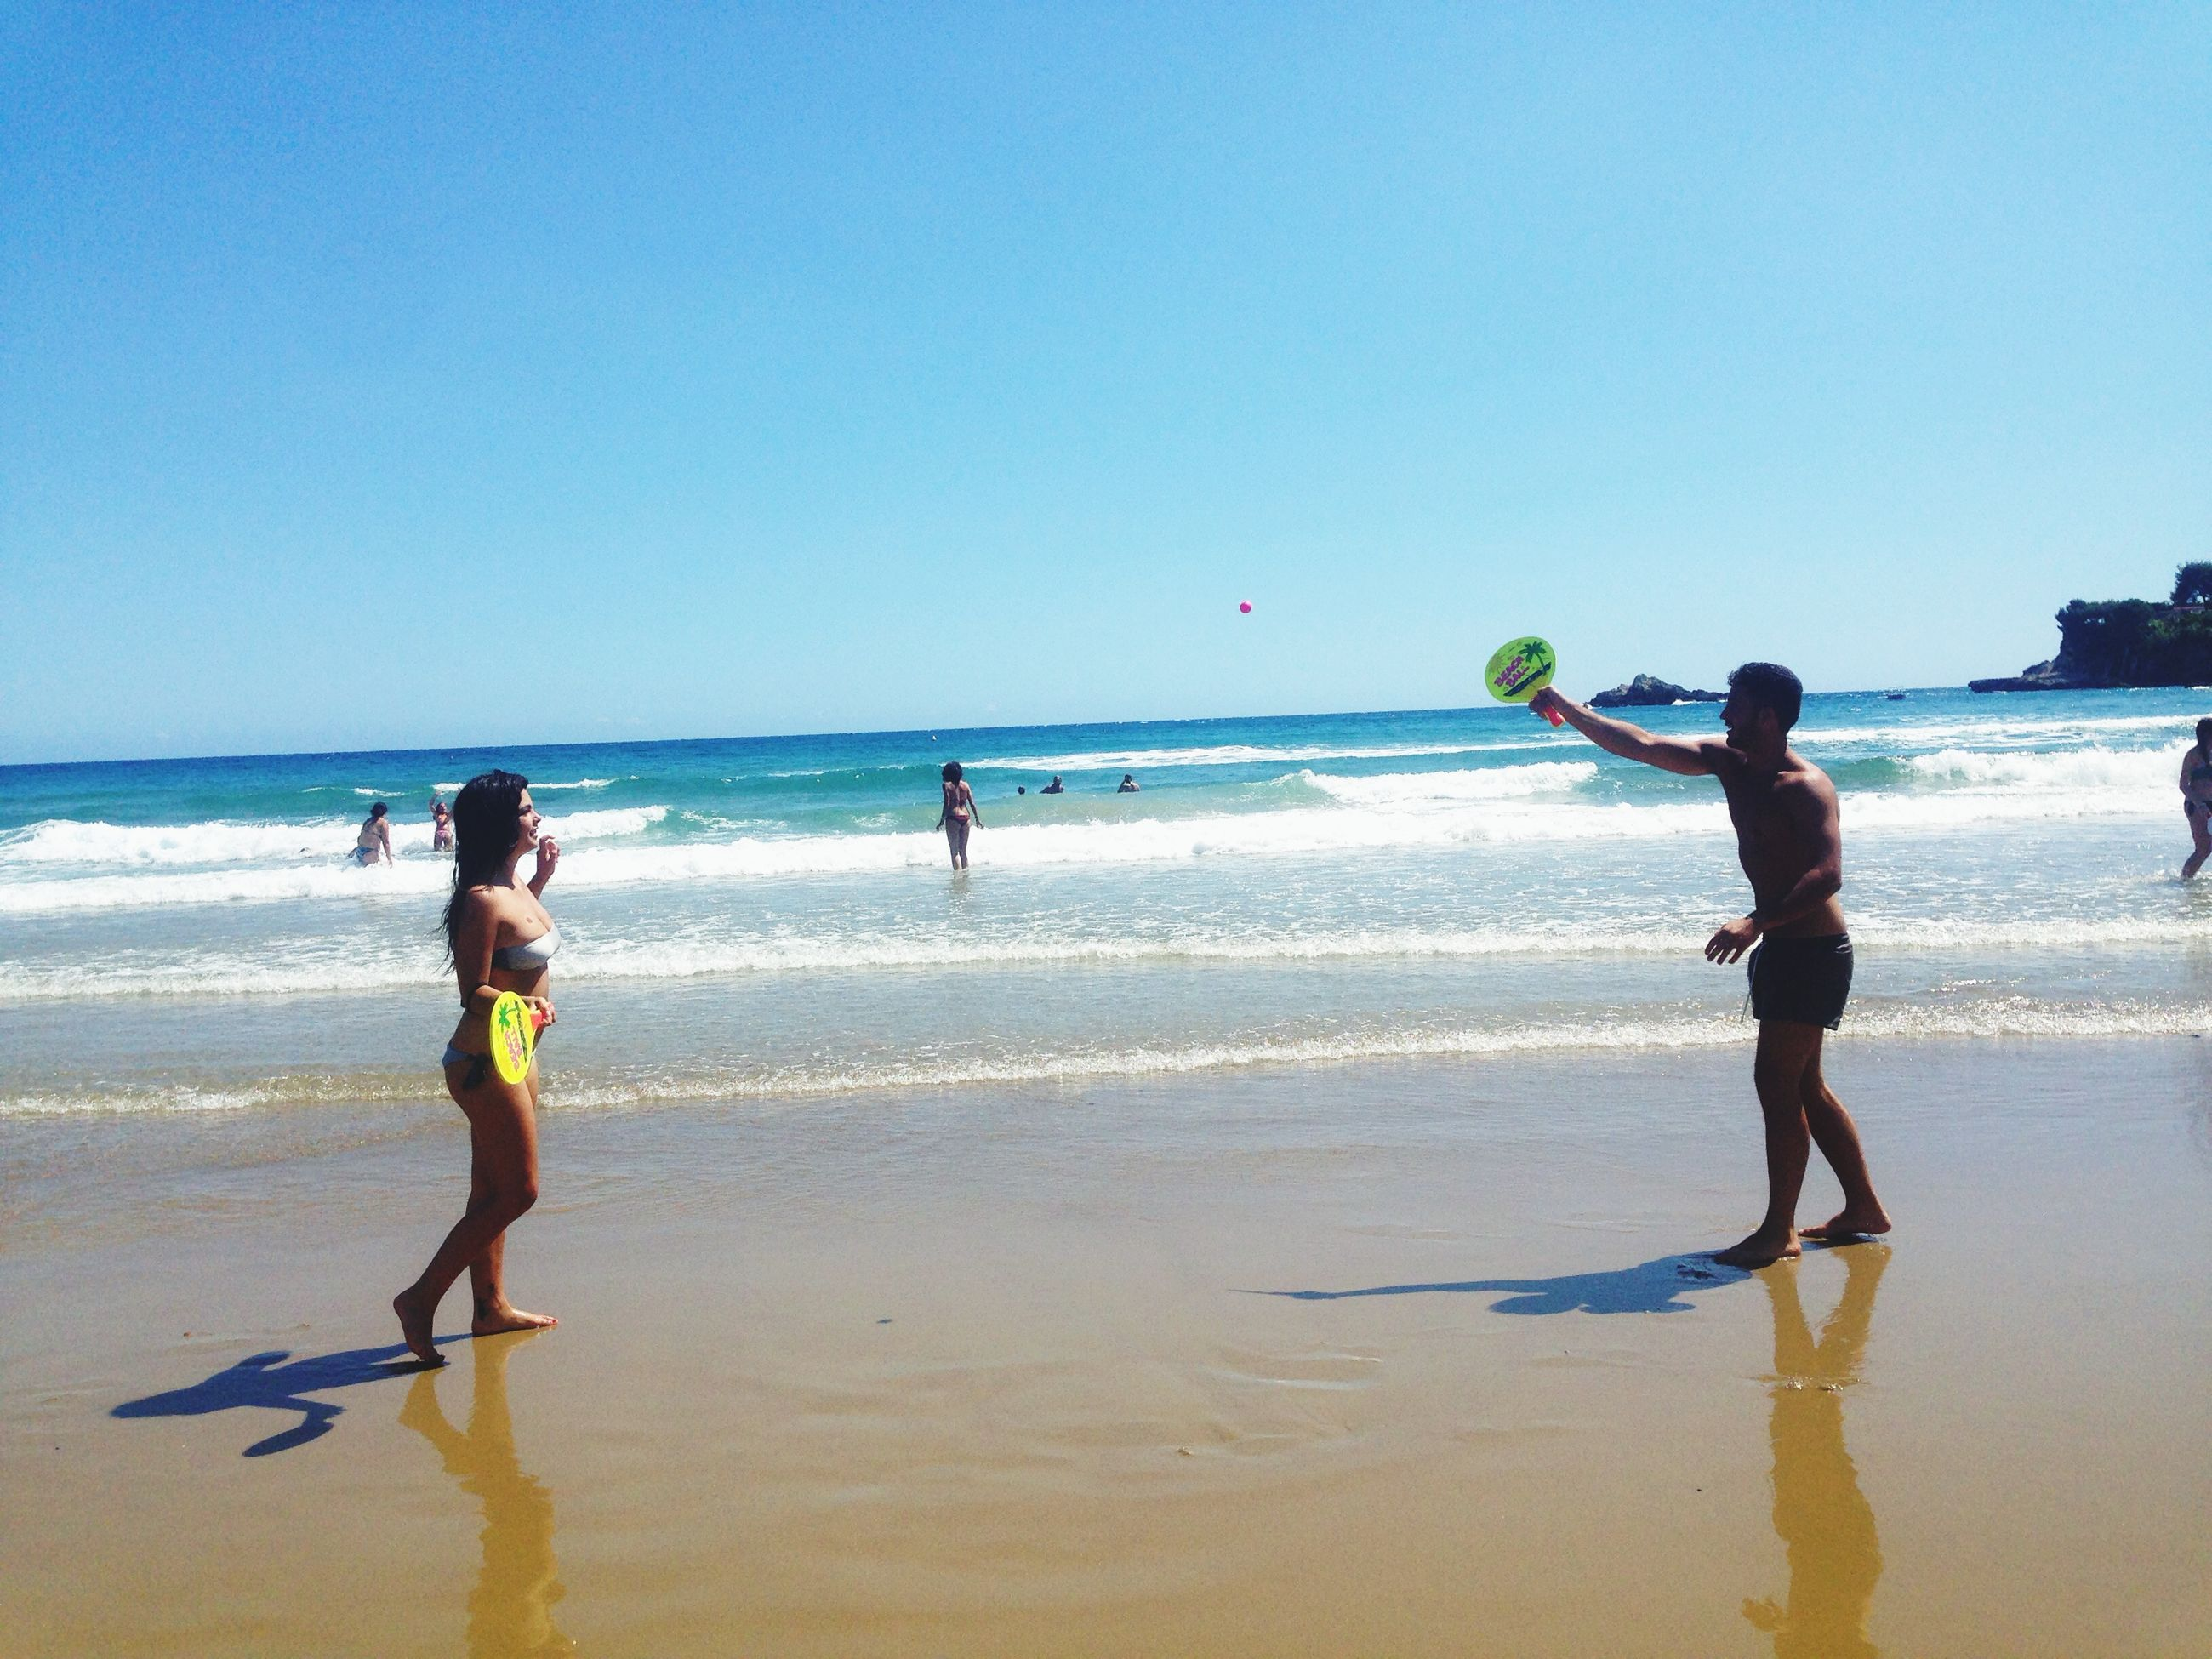 beach, sea, water, horizon over water, shore, leisure activity, full length, childhood, lifestyles, sand, clear sky, boys, vacations, elementary age, girls, enjoyment, fun, wave, standing